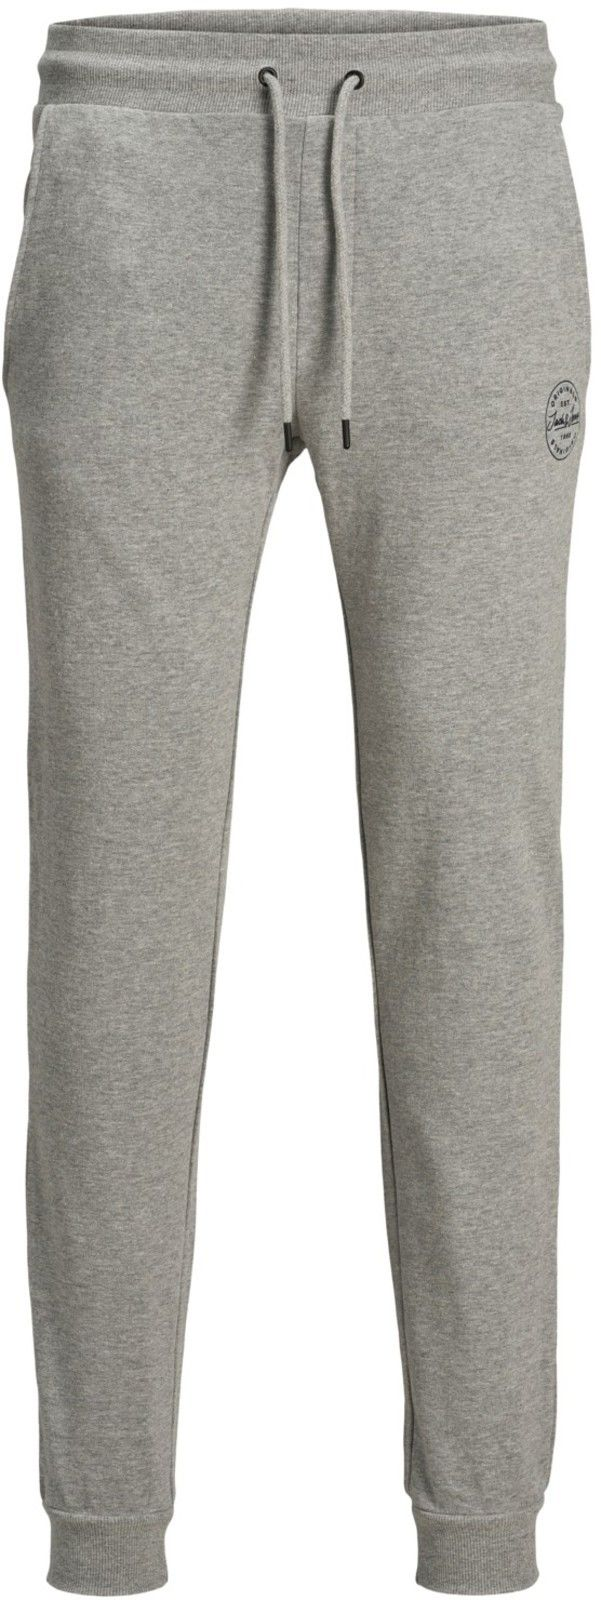 Jack & Jones Gordon Shark Jogger Bottoms Grey